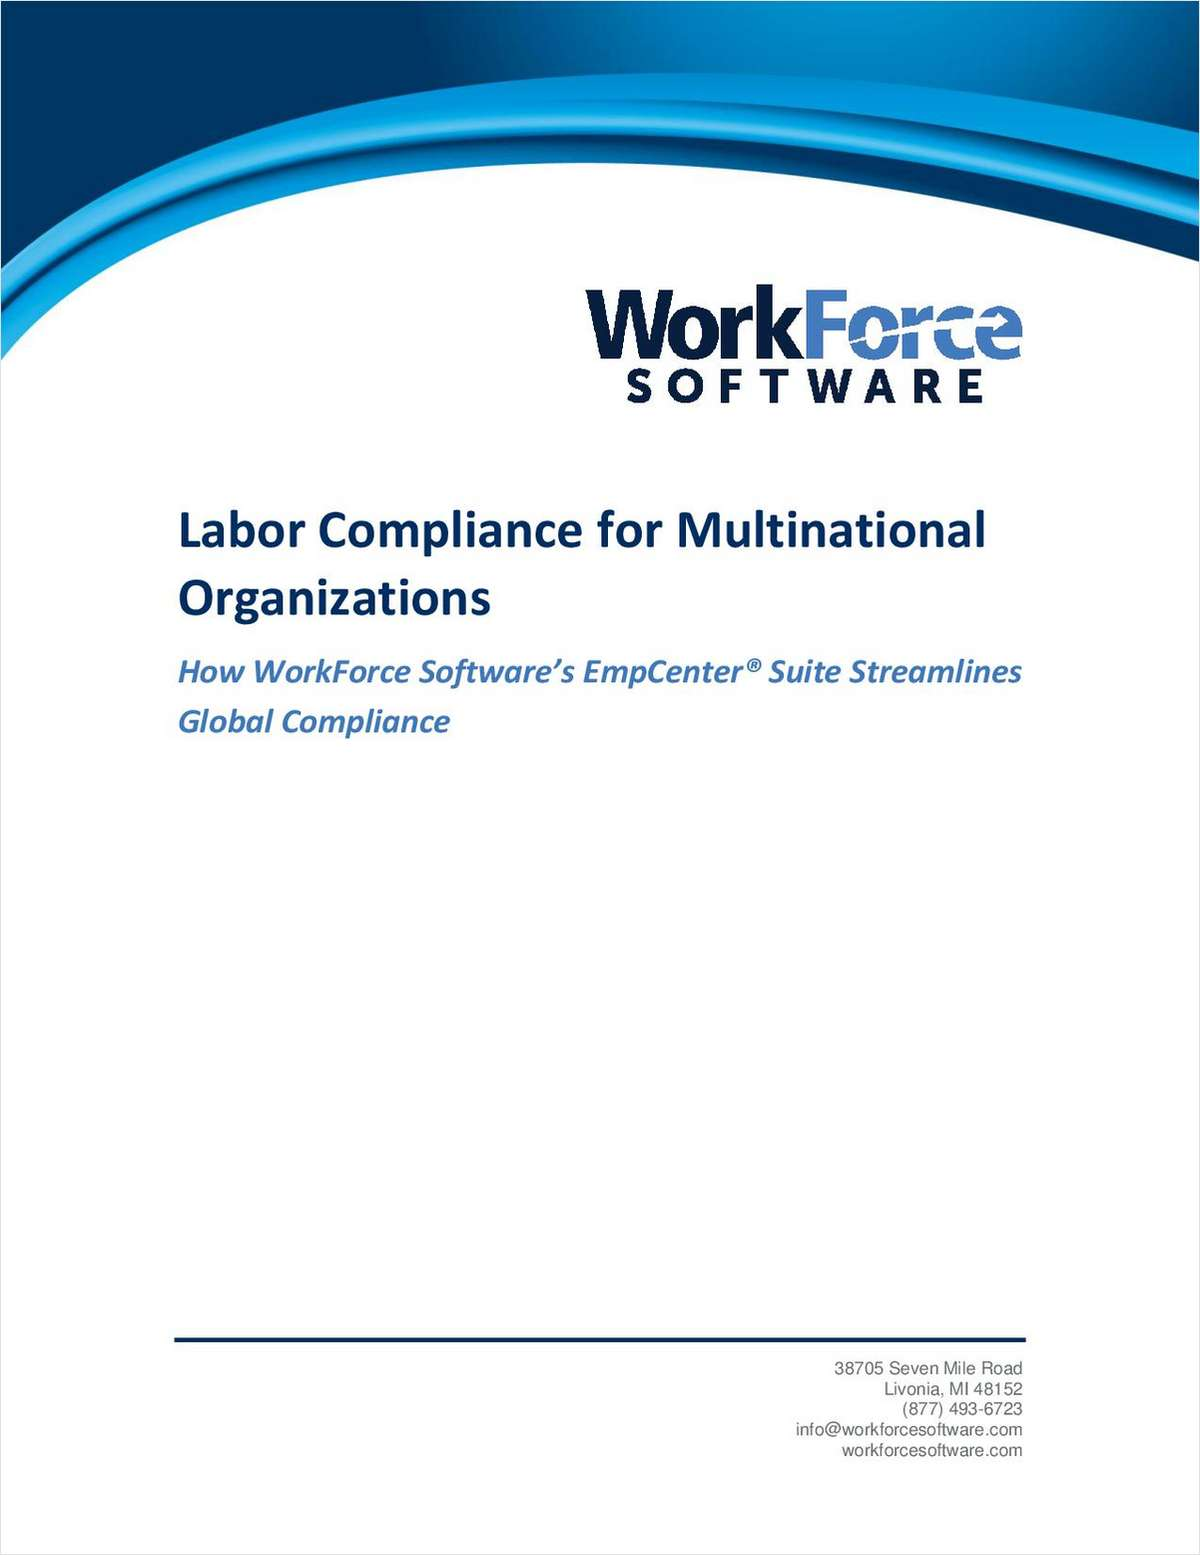 Making HR's Job Easier: Labor Compliance for Multinational Organizations